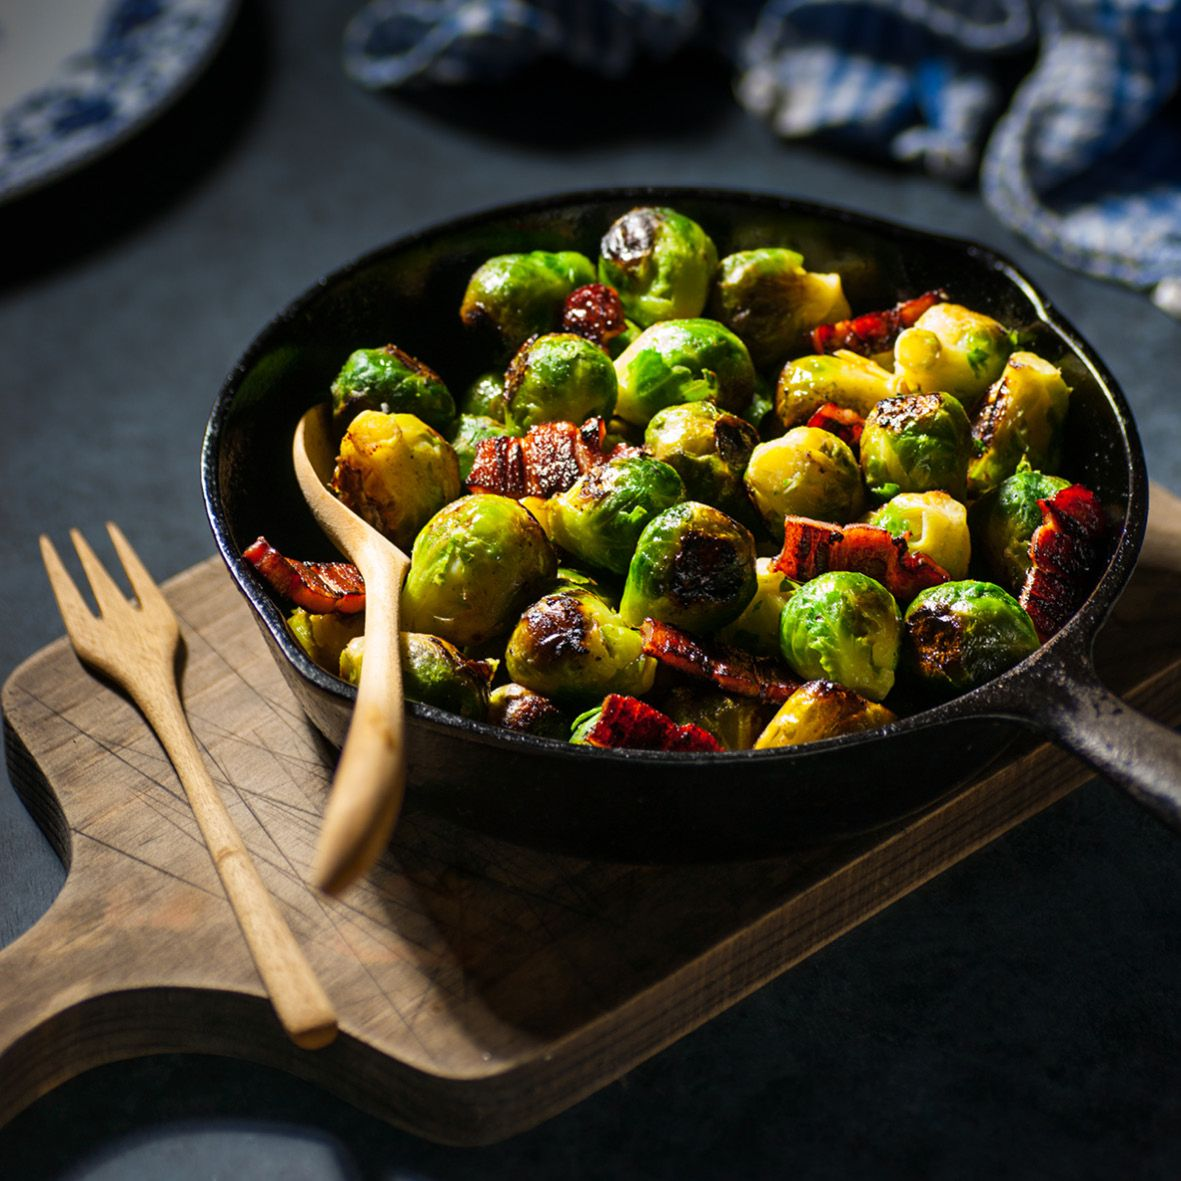 Brussels_sprouts_with_maple_glazed_bacon.jpg